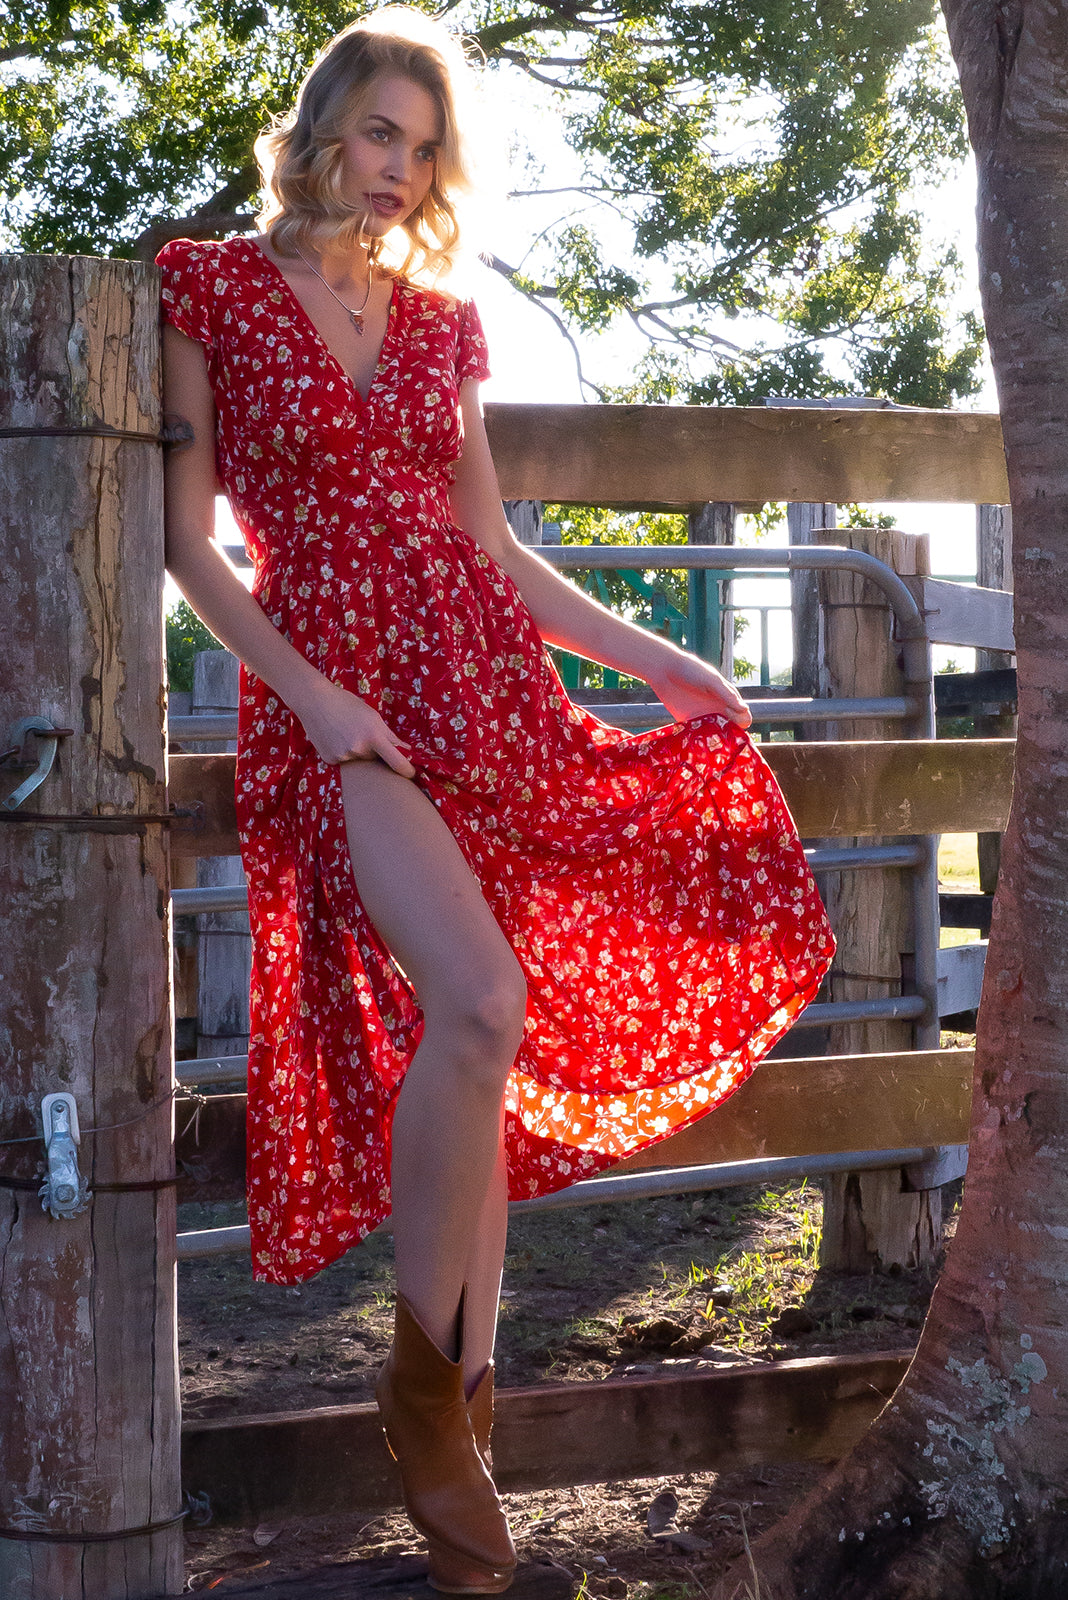 Jude Tangelo Red Midi Dress, bohemian summer style, 100% viscose, elasticated shirred back waist, softly fitted basque waist, functional buttons, deep side pockets, bright red base with small white, gold and black floral print.